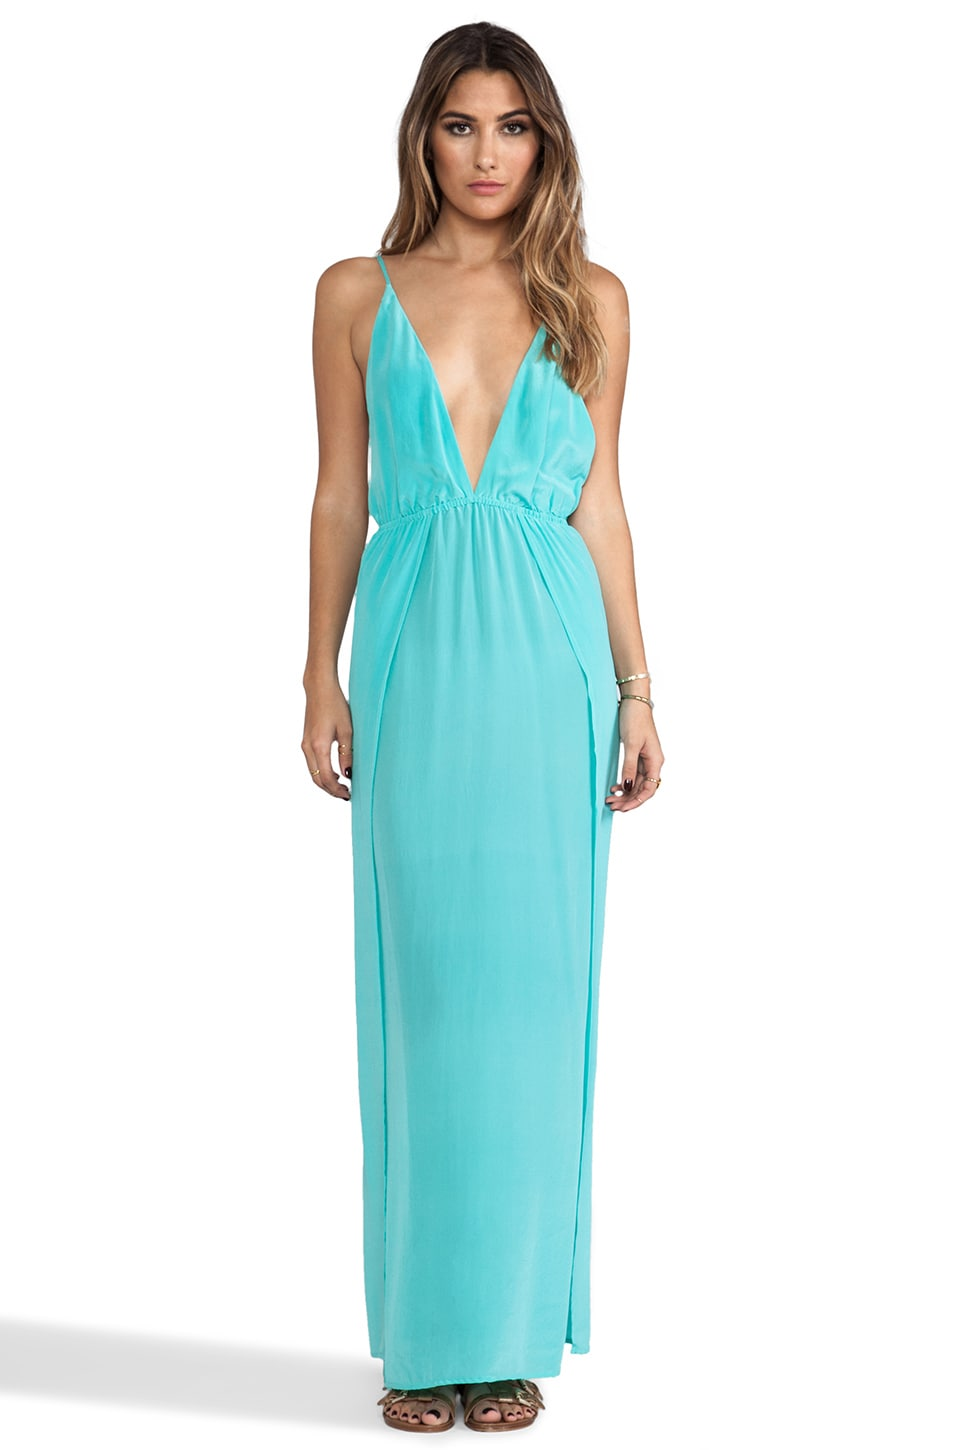 Indah River Silk Crepe Split Front Wrap Side Maxi Dress With Adjustable Tie Back in Aqua